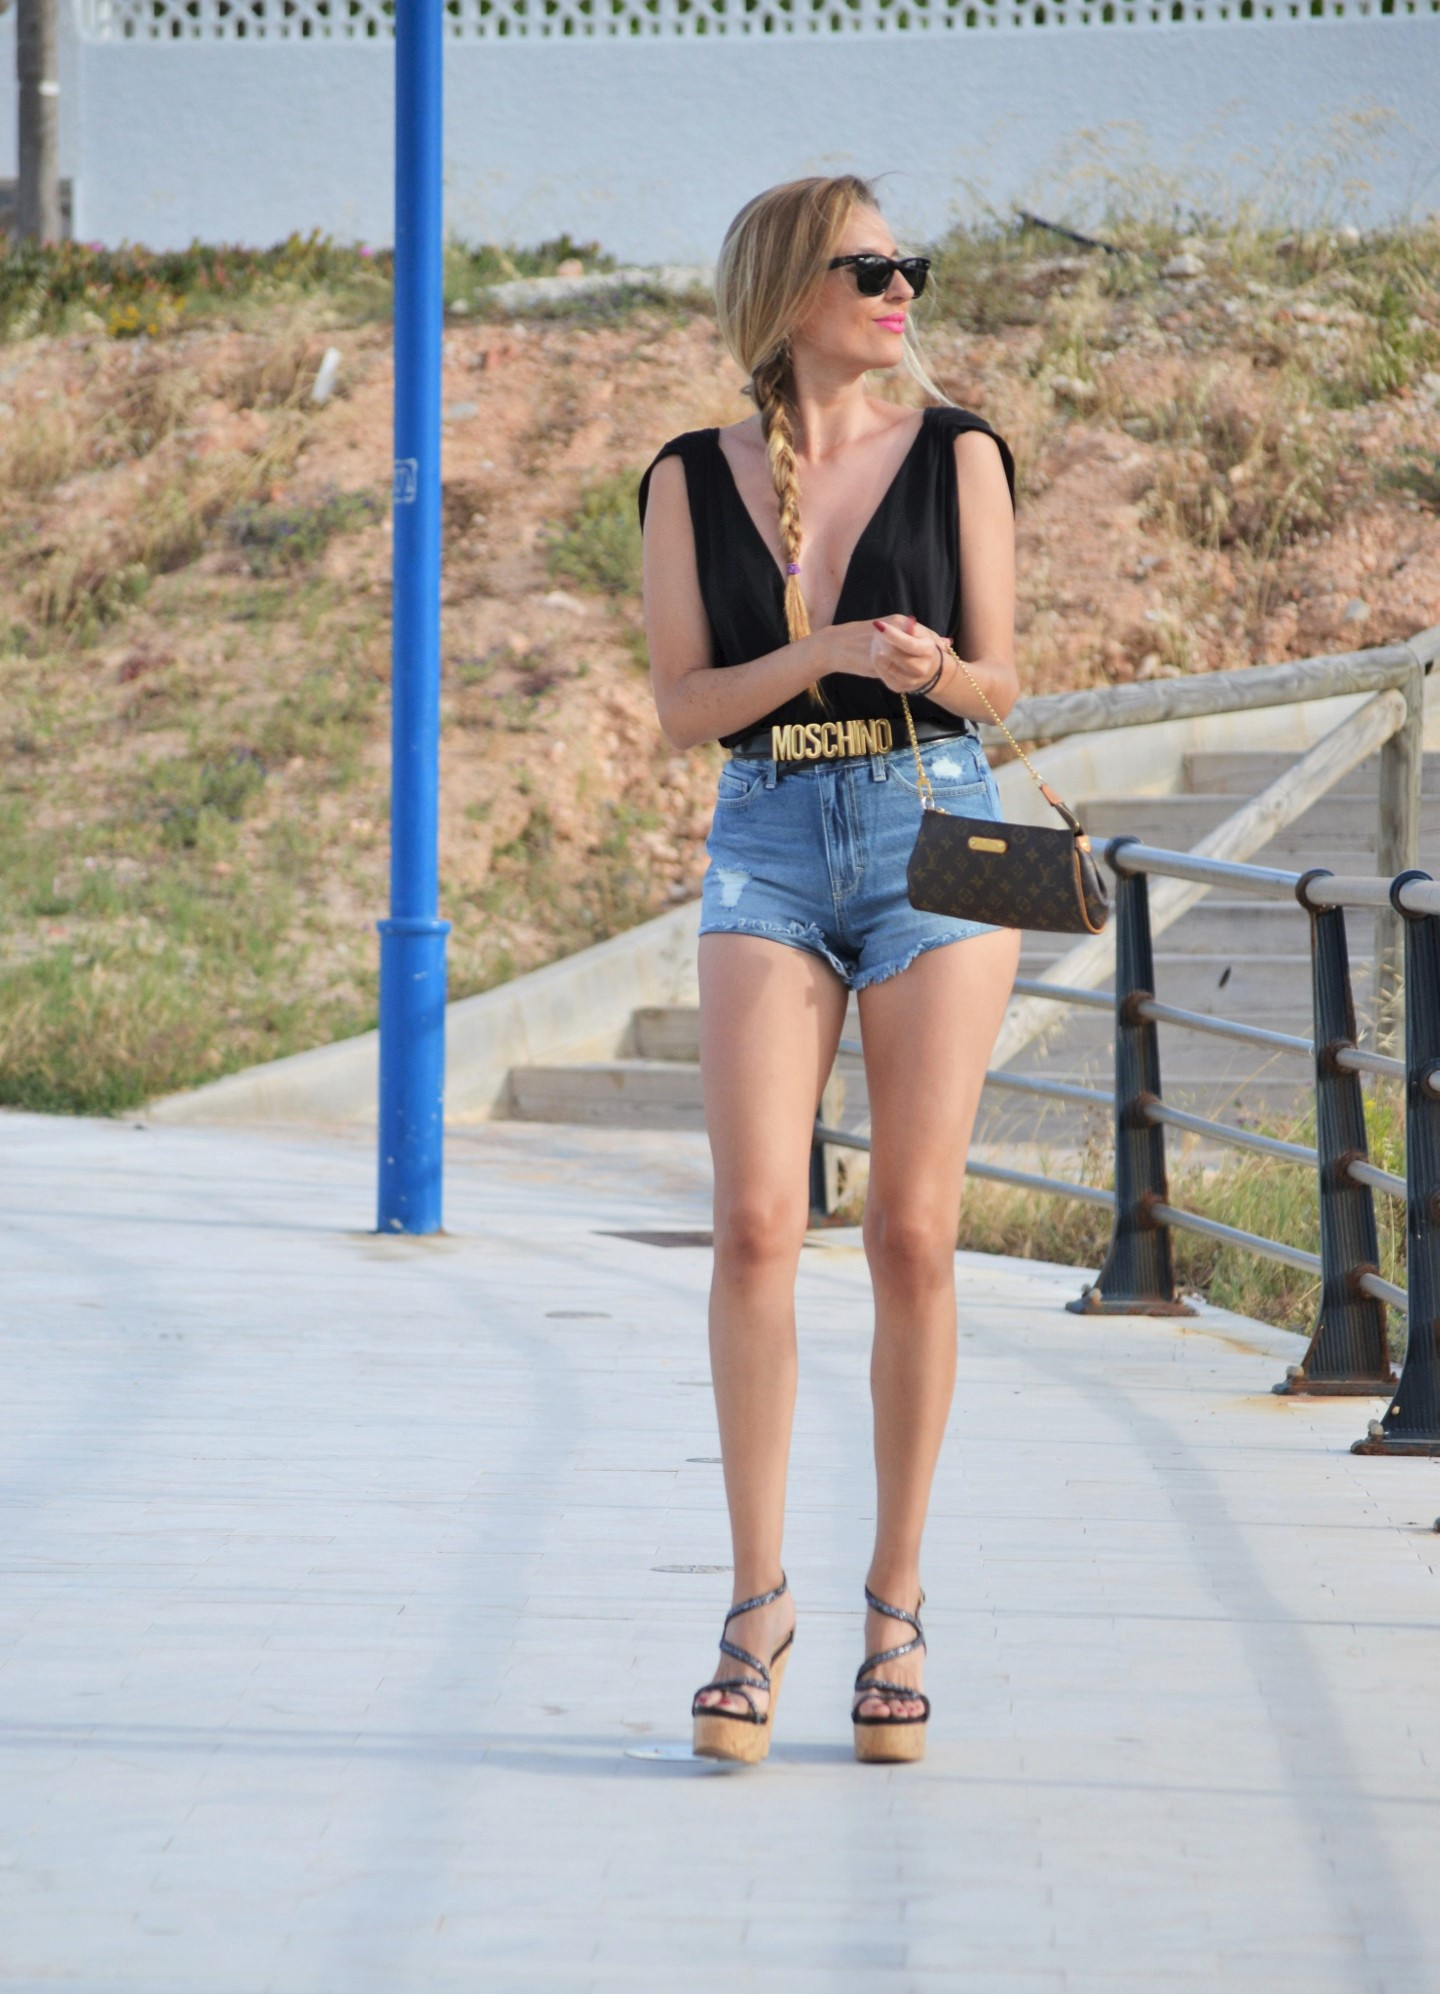 Cello_High_Waisted_Shorts_Moschino_Alpe_Pochette_Eva_Louis_Vuitton_Ray_Ban_Lara_Martin_Gilarranz_Bymyheels (5)